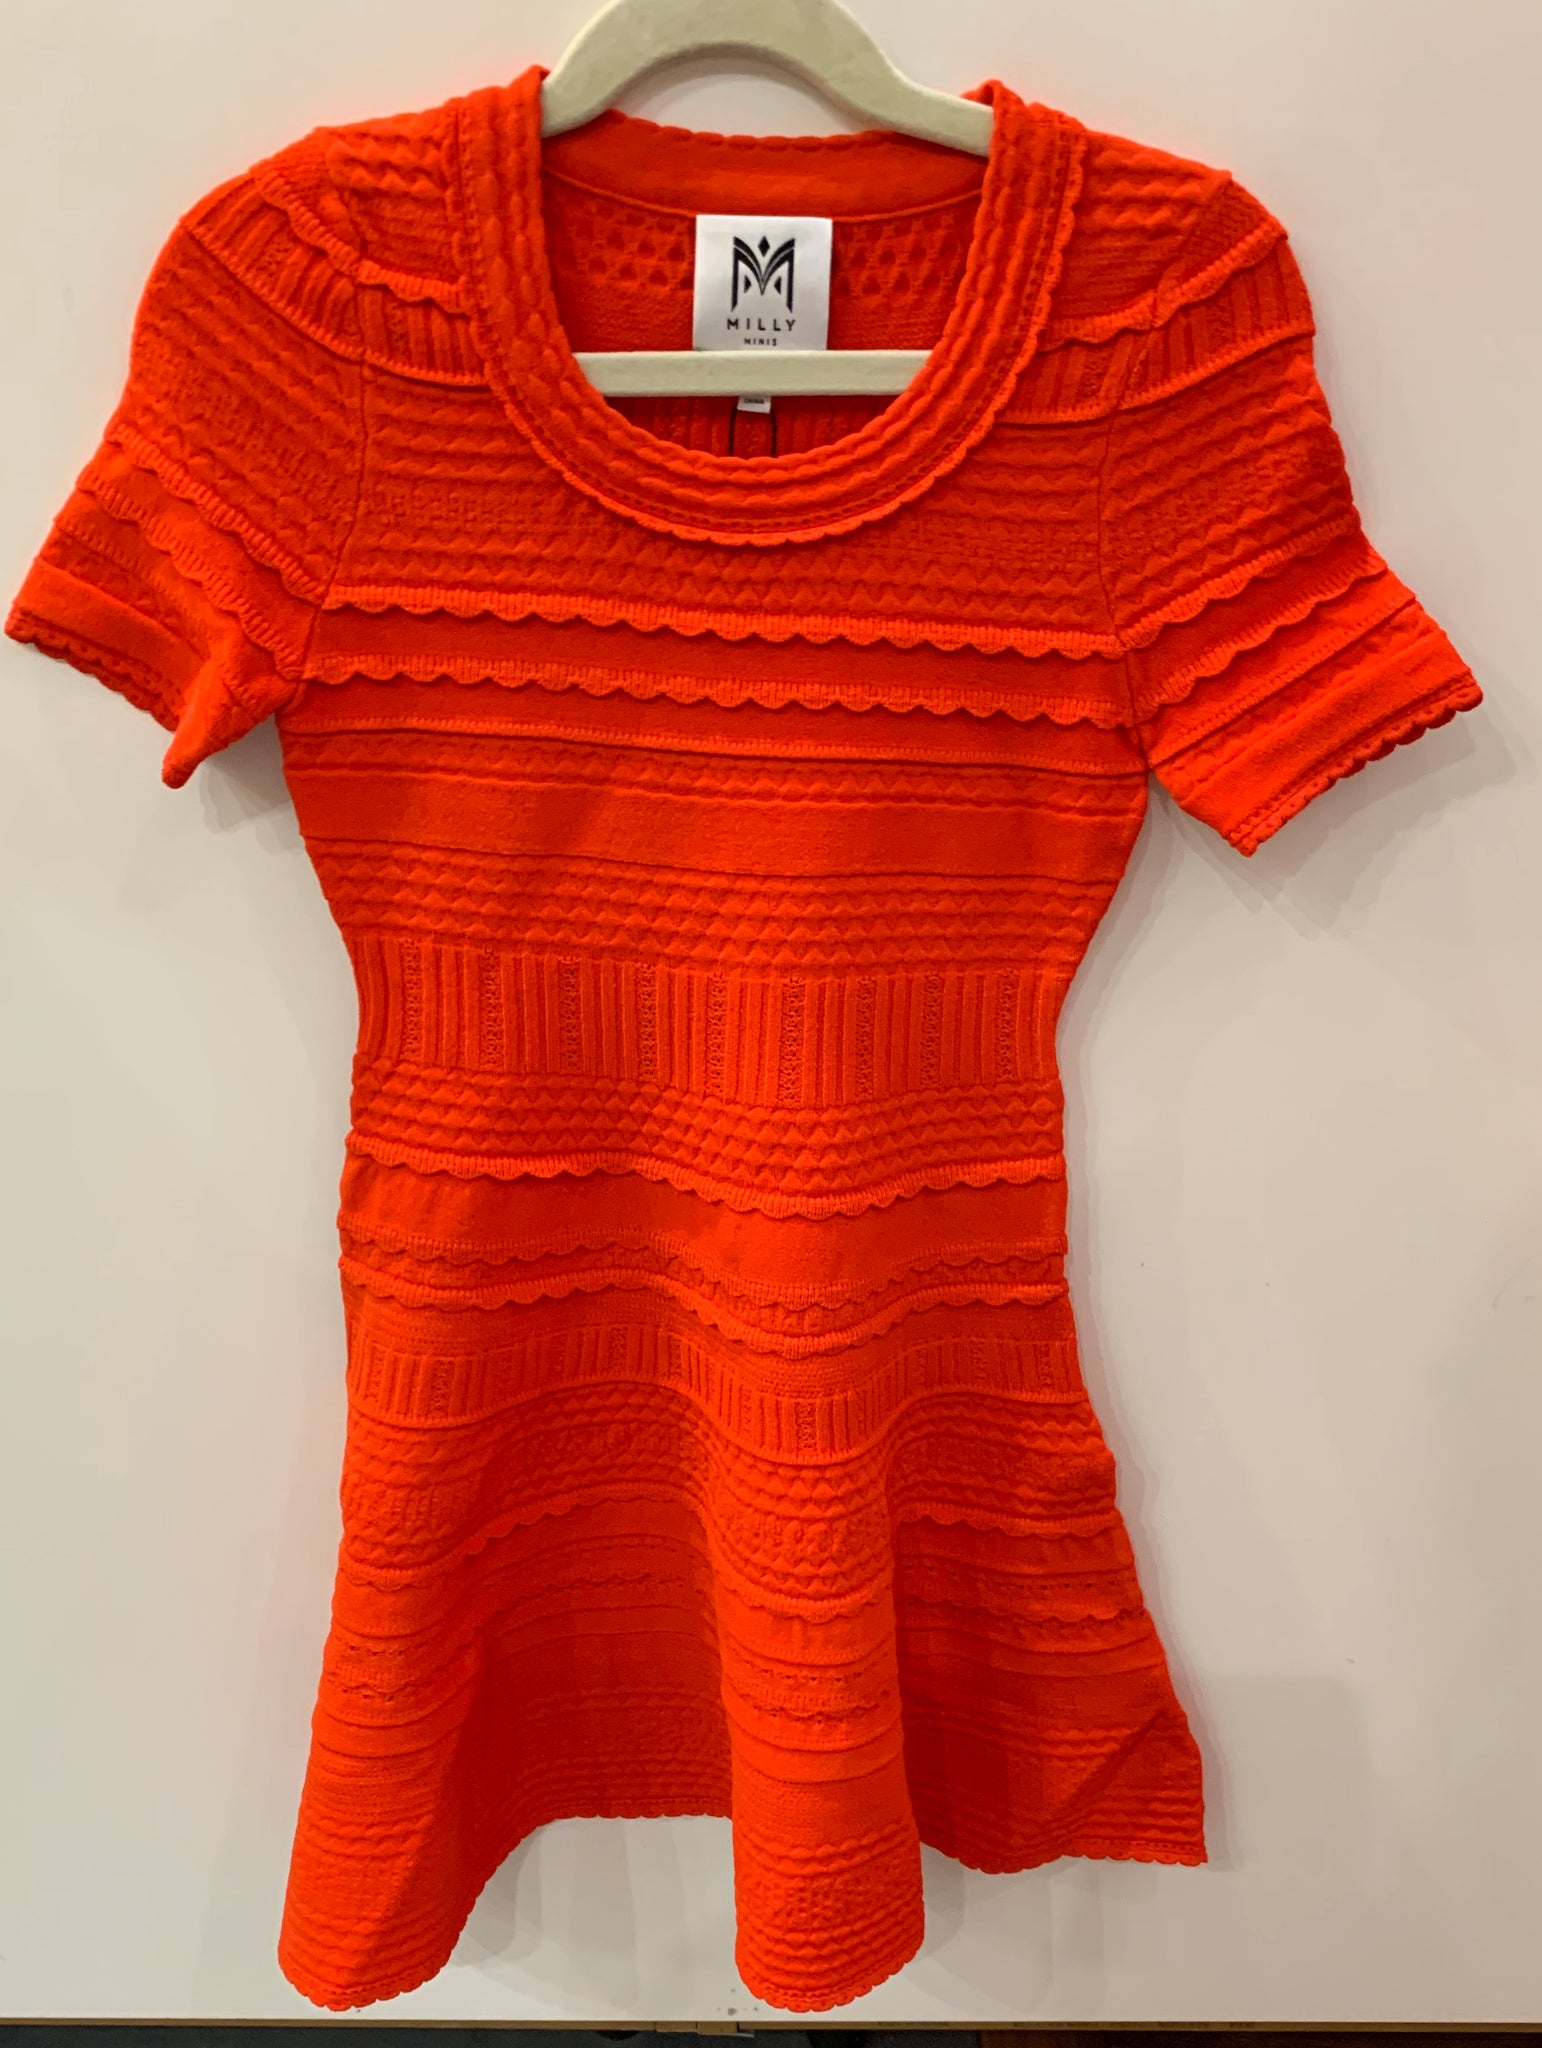 Milly Textured Knit Dress - Tomato